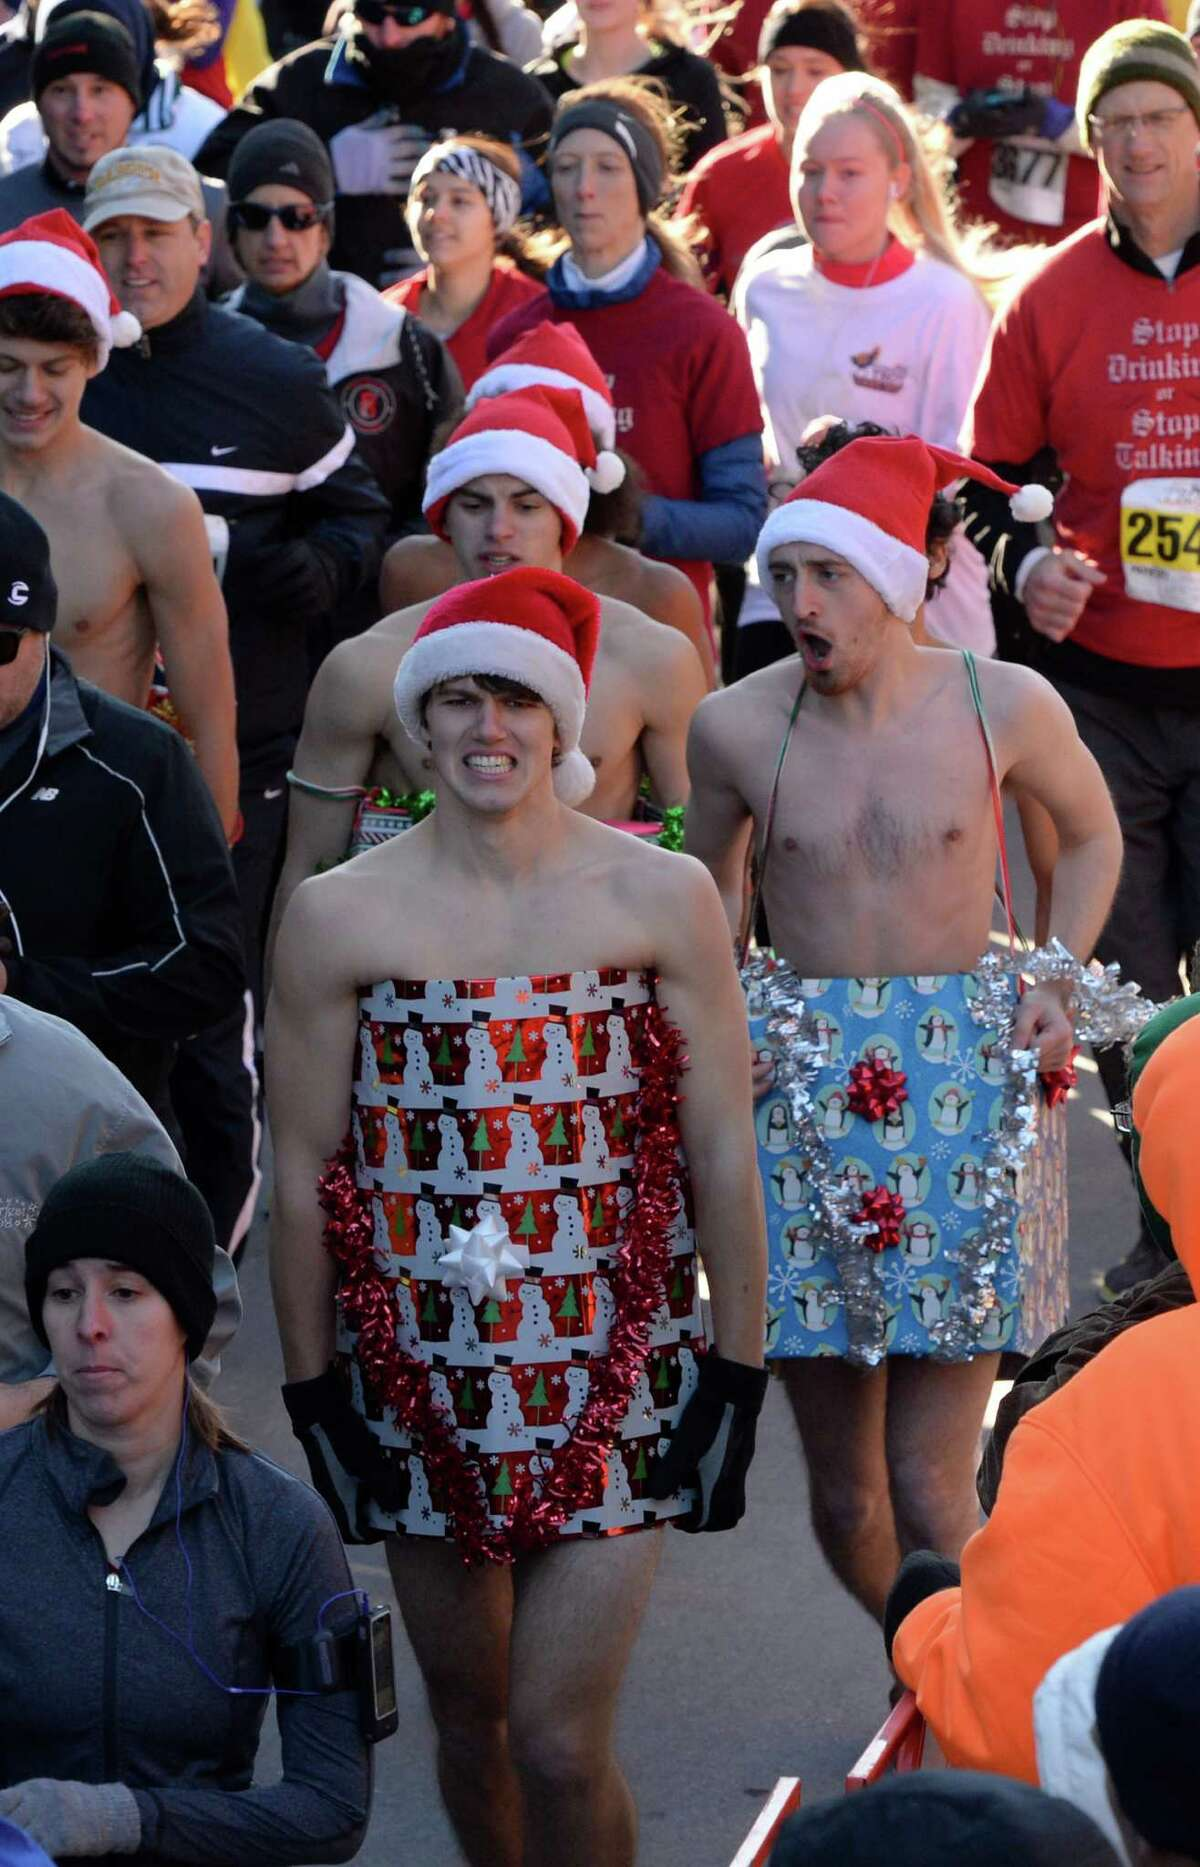 There were a number of unusual costumes Thursday Nov. 28, 2013, in the Troy Turkey Trot 5K in Troy, N.Y. (Skip Dickstein/Times Union)